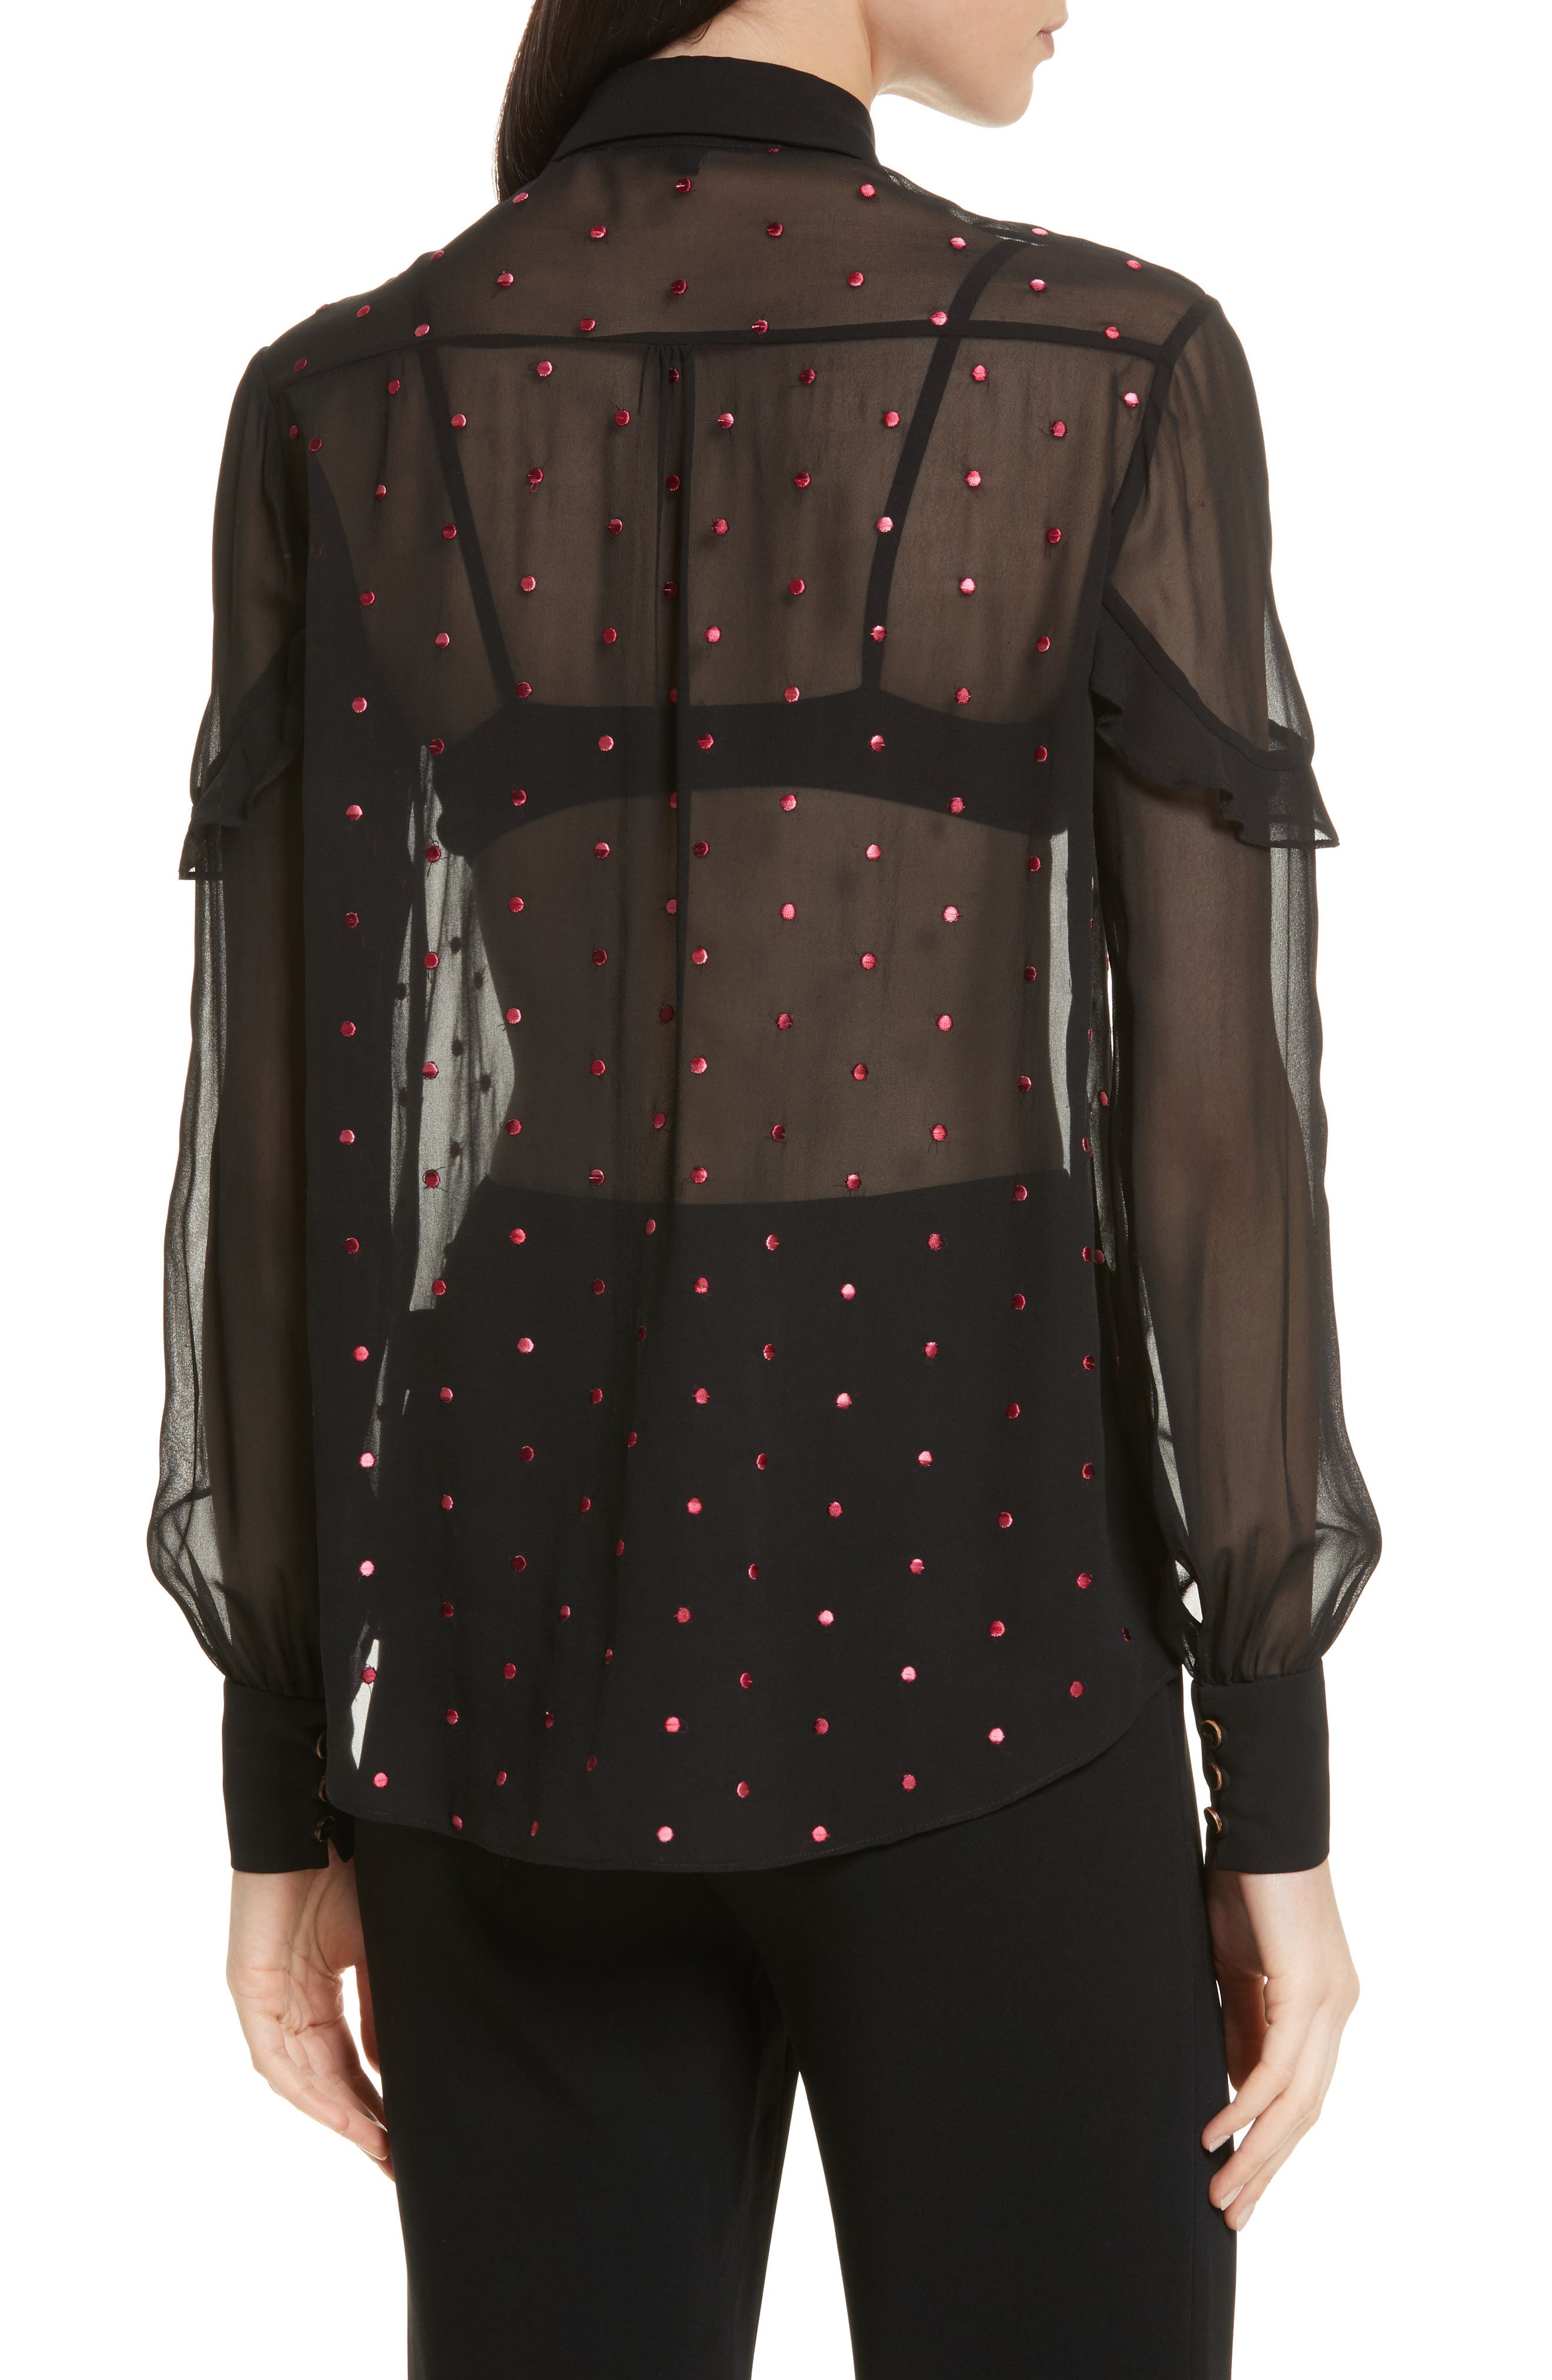 Myra Embroidered Silk Shirt,                             Alternate thumbnail 2, color,                             Black Rose Ombre Dots